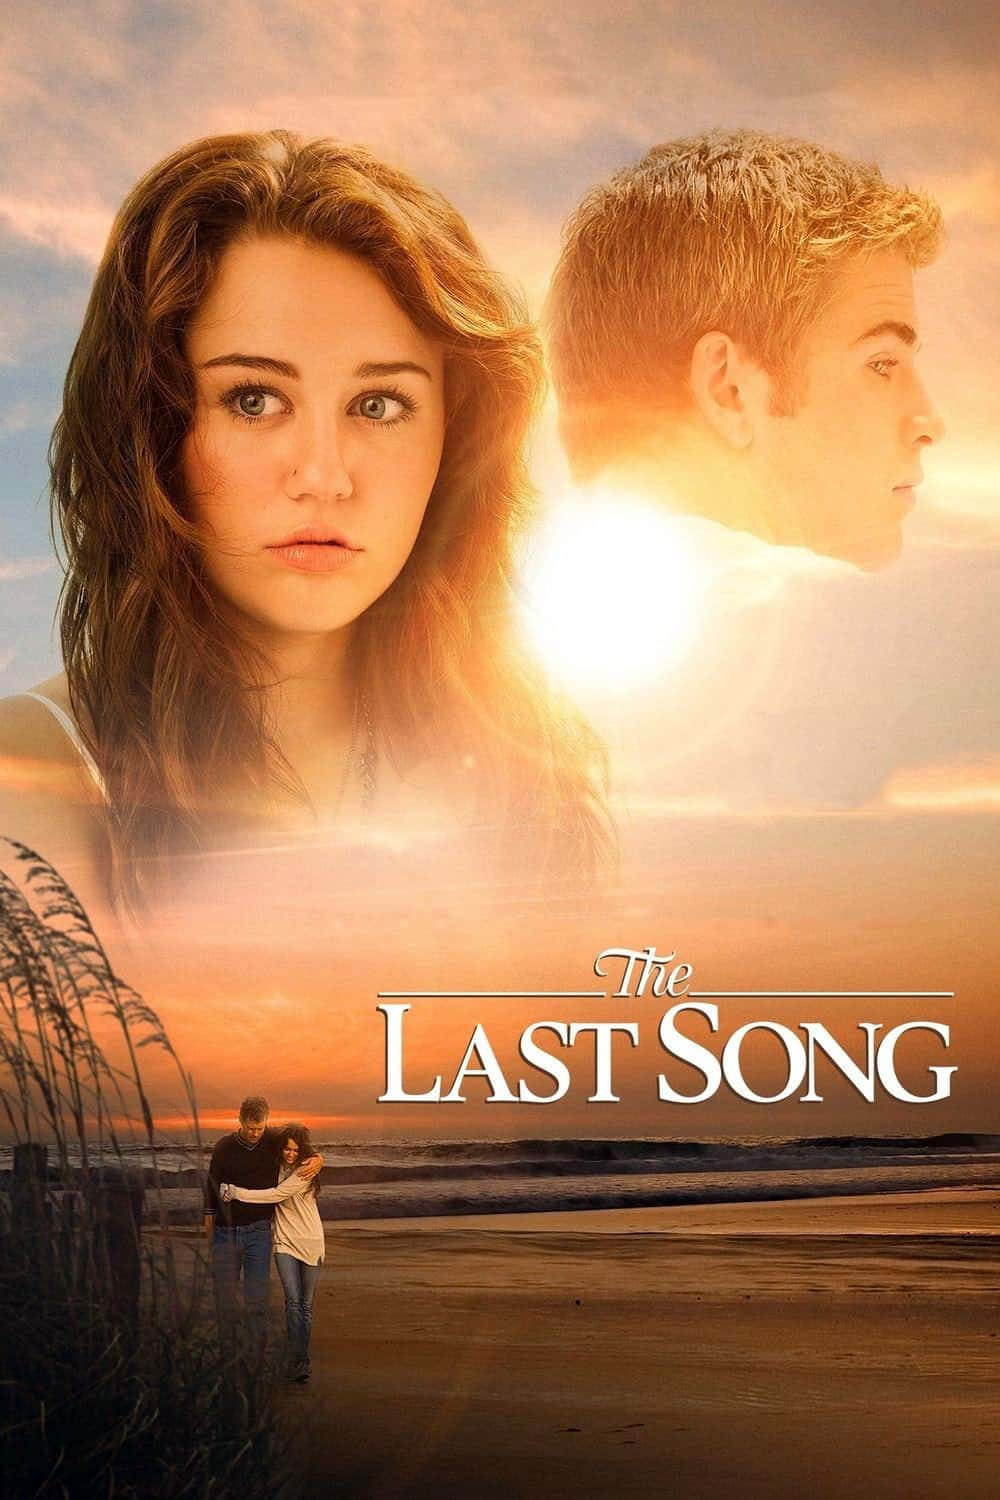 The Last Song, 2010